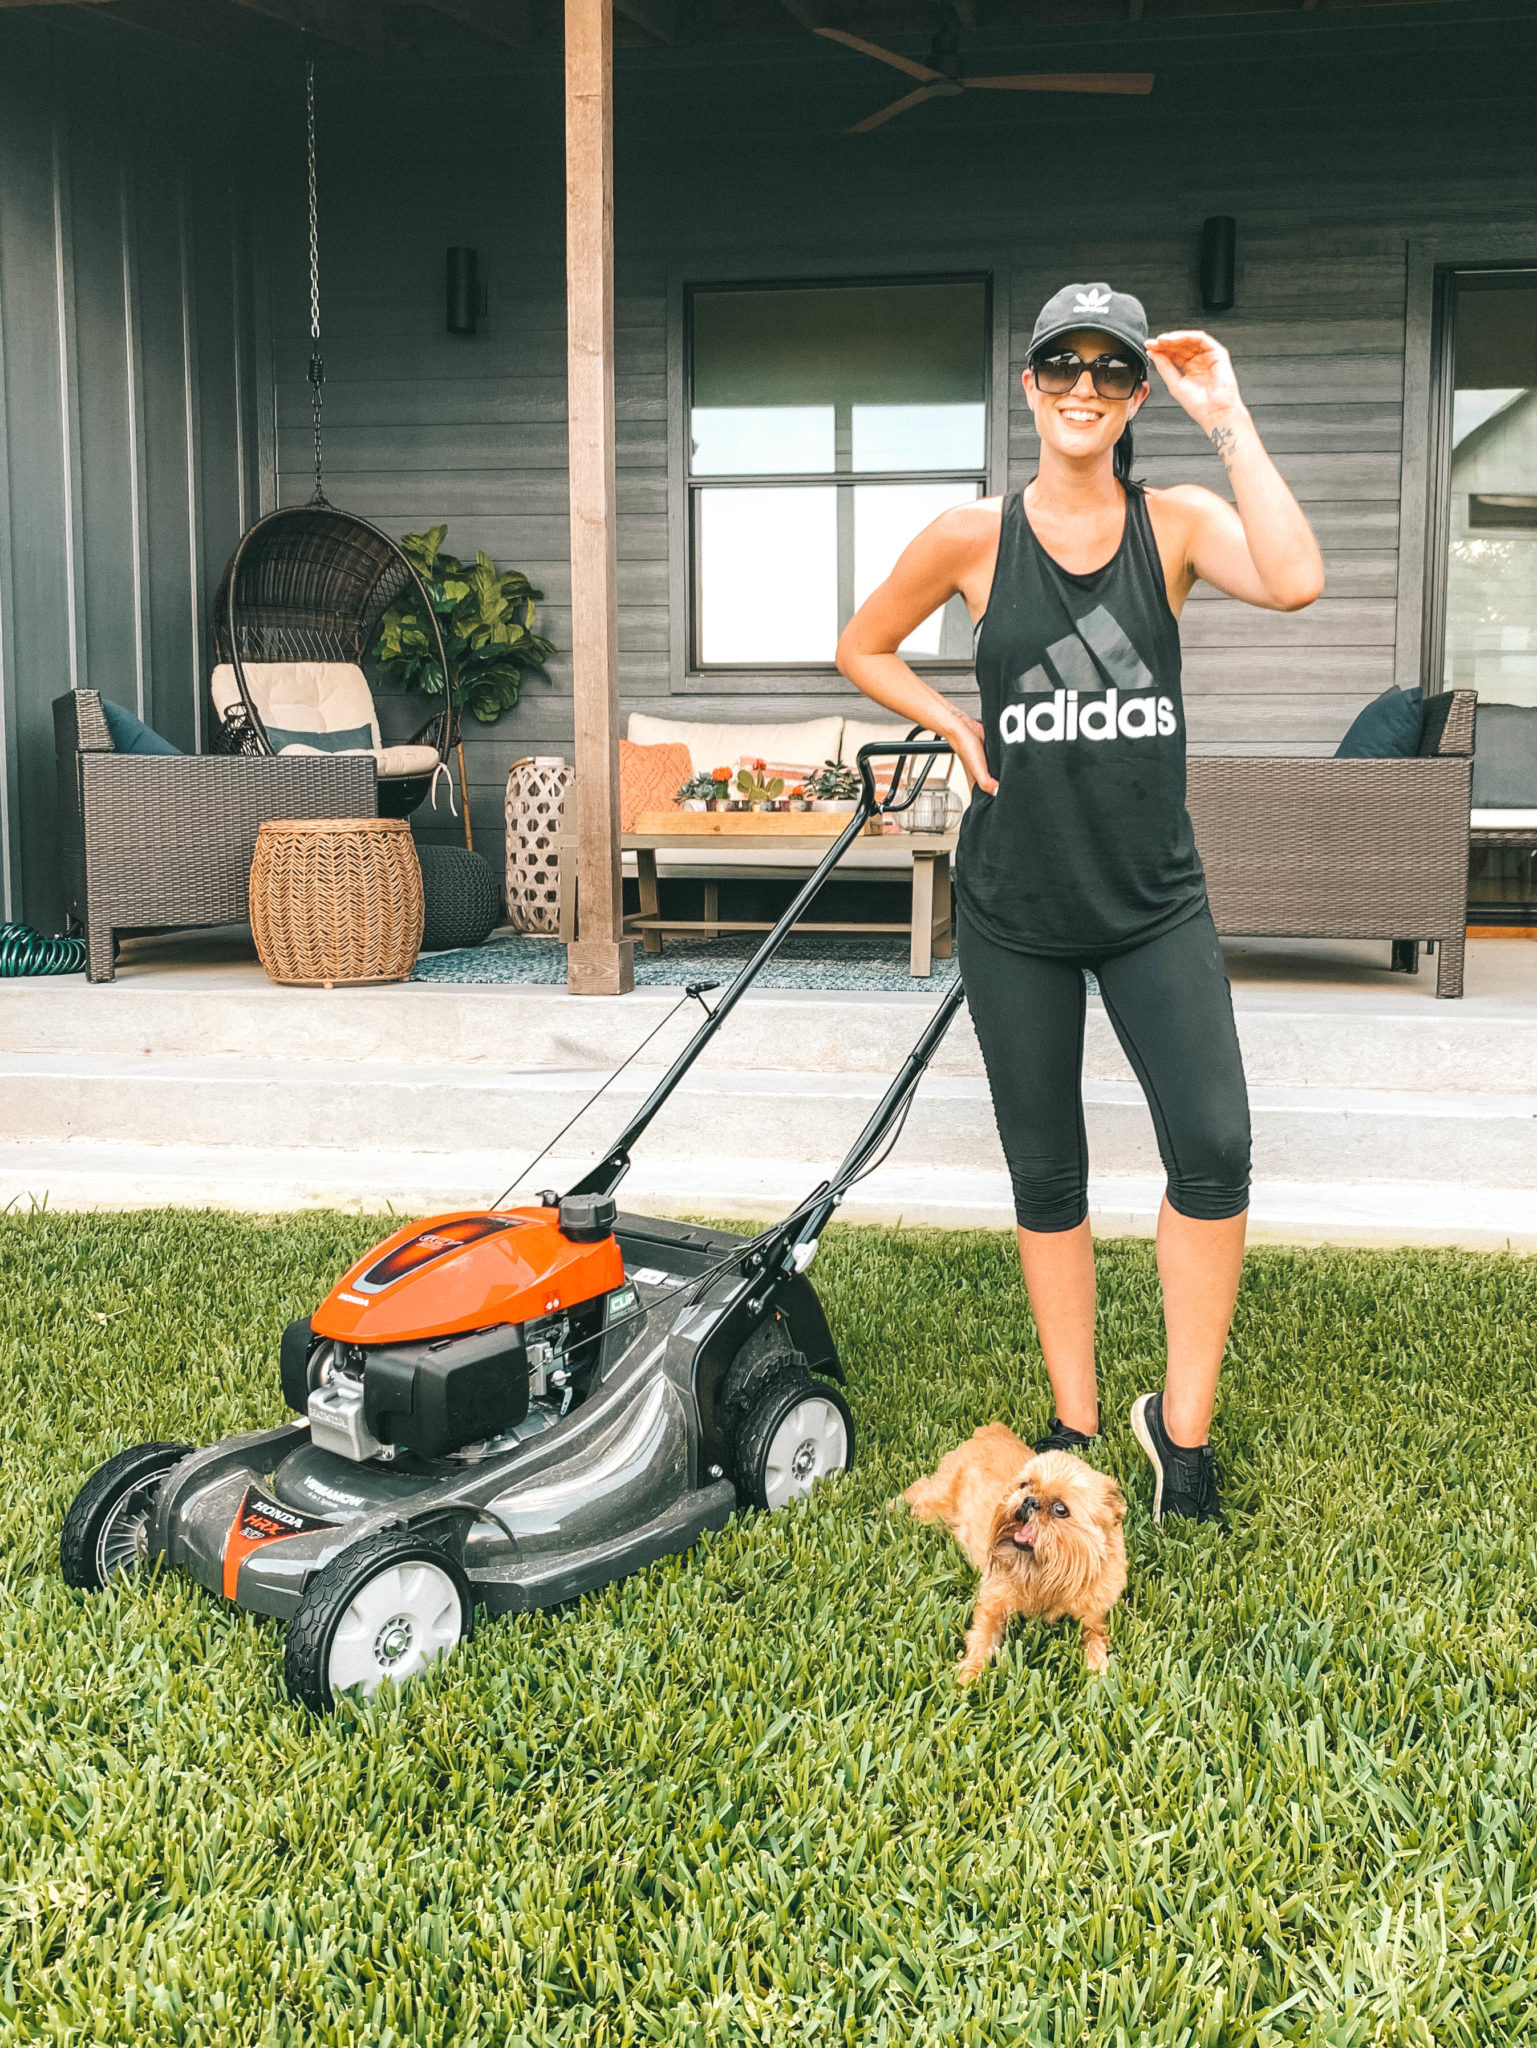 Honda Miimo Robotic Lawn Mower Review | If you're like me and love to mow the lawn, this robotic lawn mower will change the way you do lawn care! || Dressed to Kill #roboticlawnmower #lawnmower #lawncare | Honda Miimo Robotic Lawn Mower Review by popular Austin lifestyle blog, Dressed to Kill: image of woman standing next to her Honda HRX217HYA lawn mower.